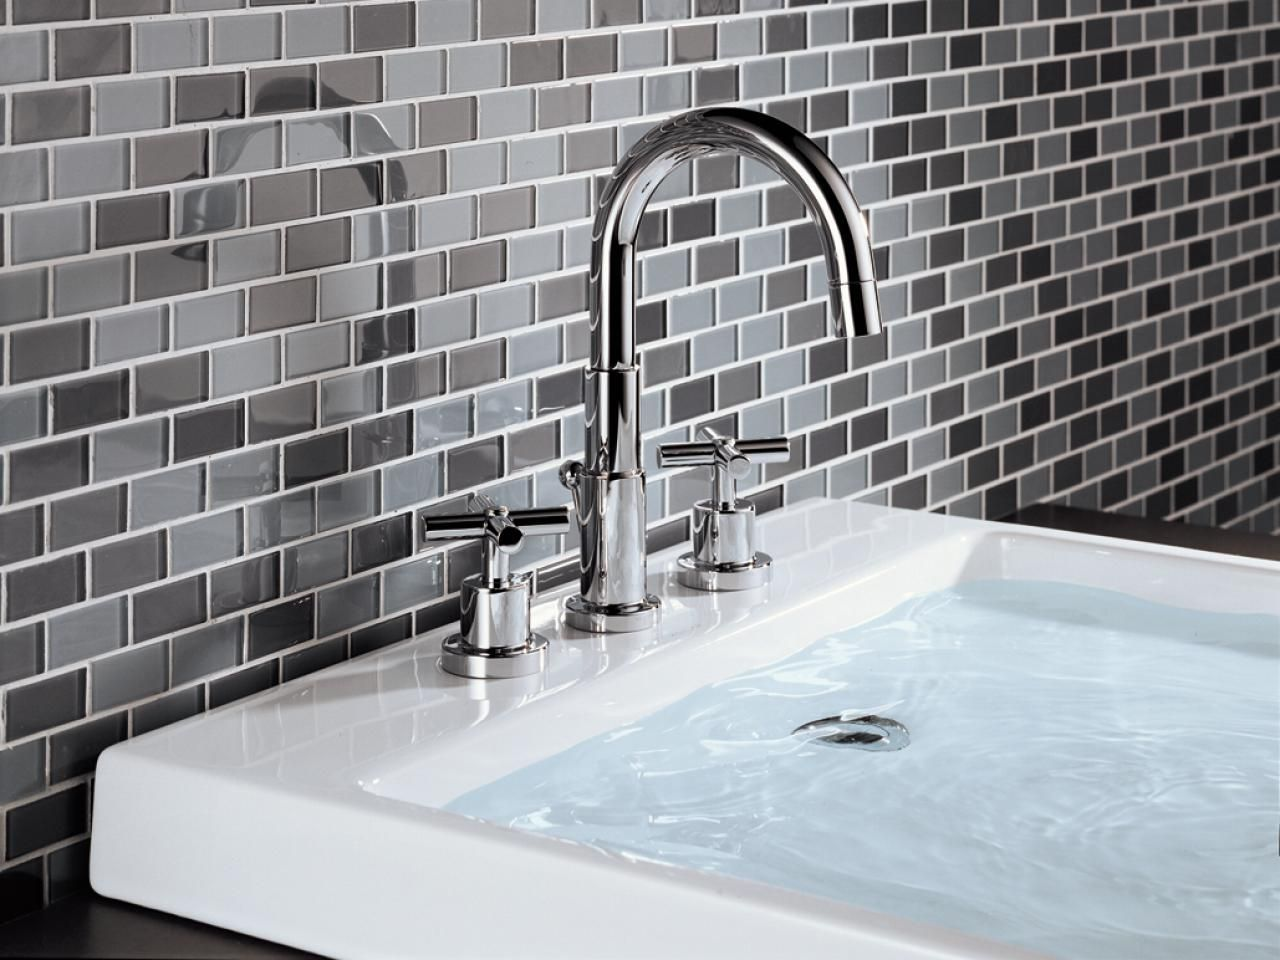 Consider factors like bathroom size and features